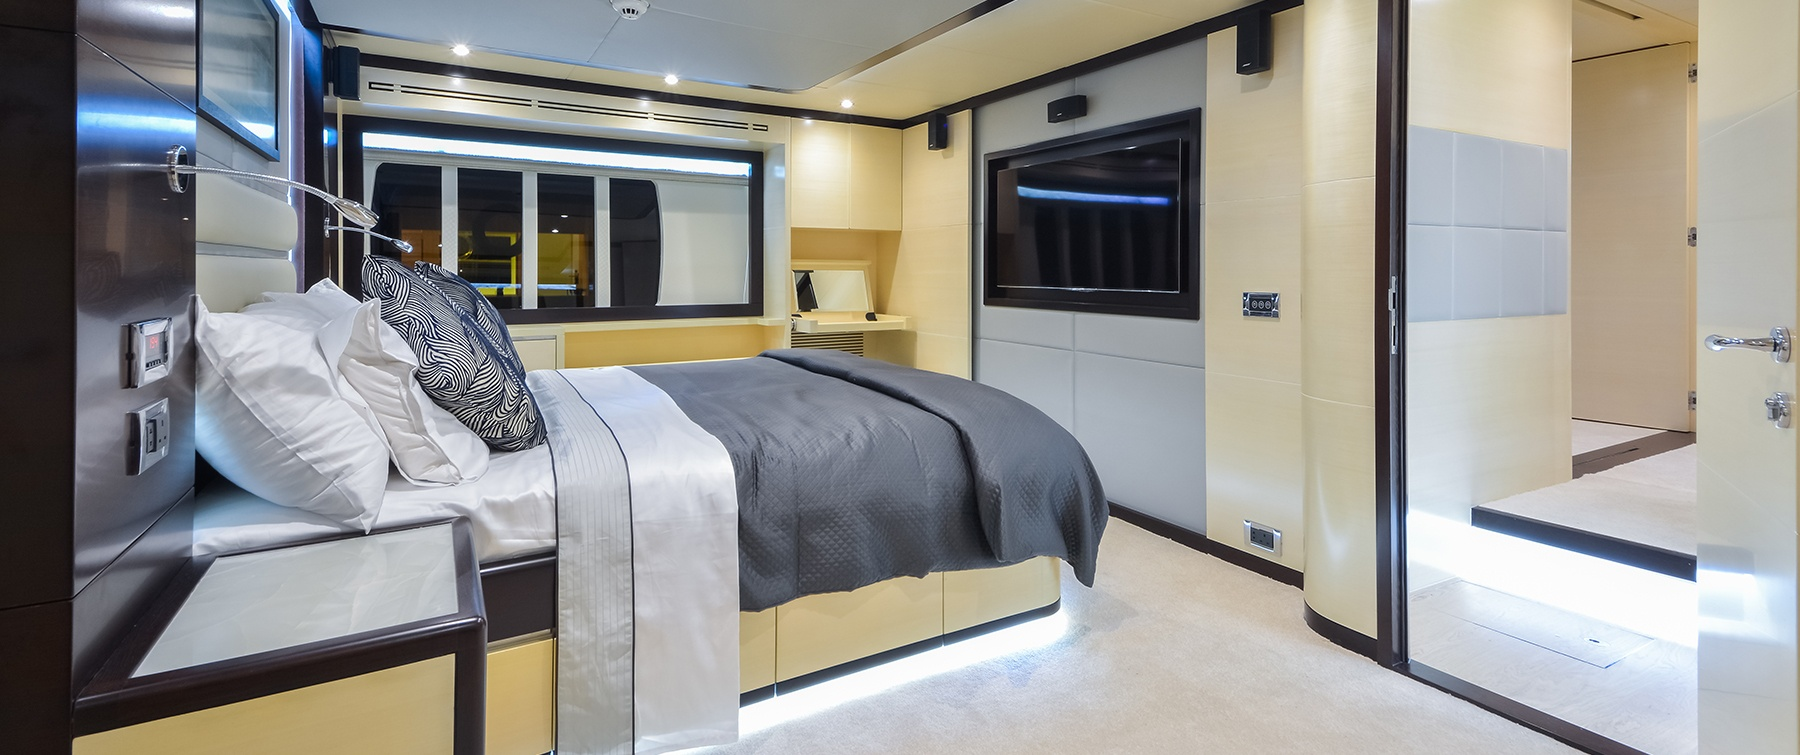 The superb interior of the Nomad 75 by Gulf Craft